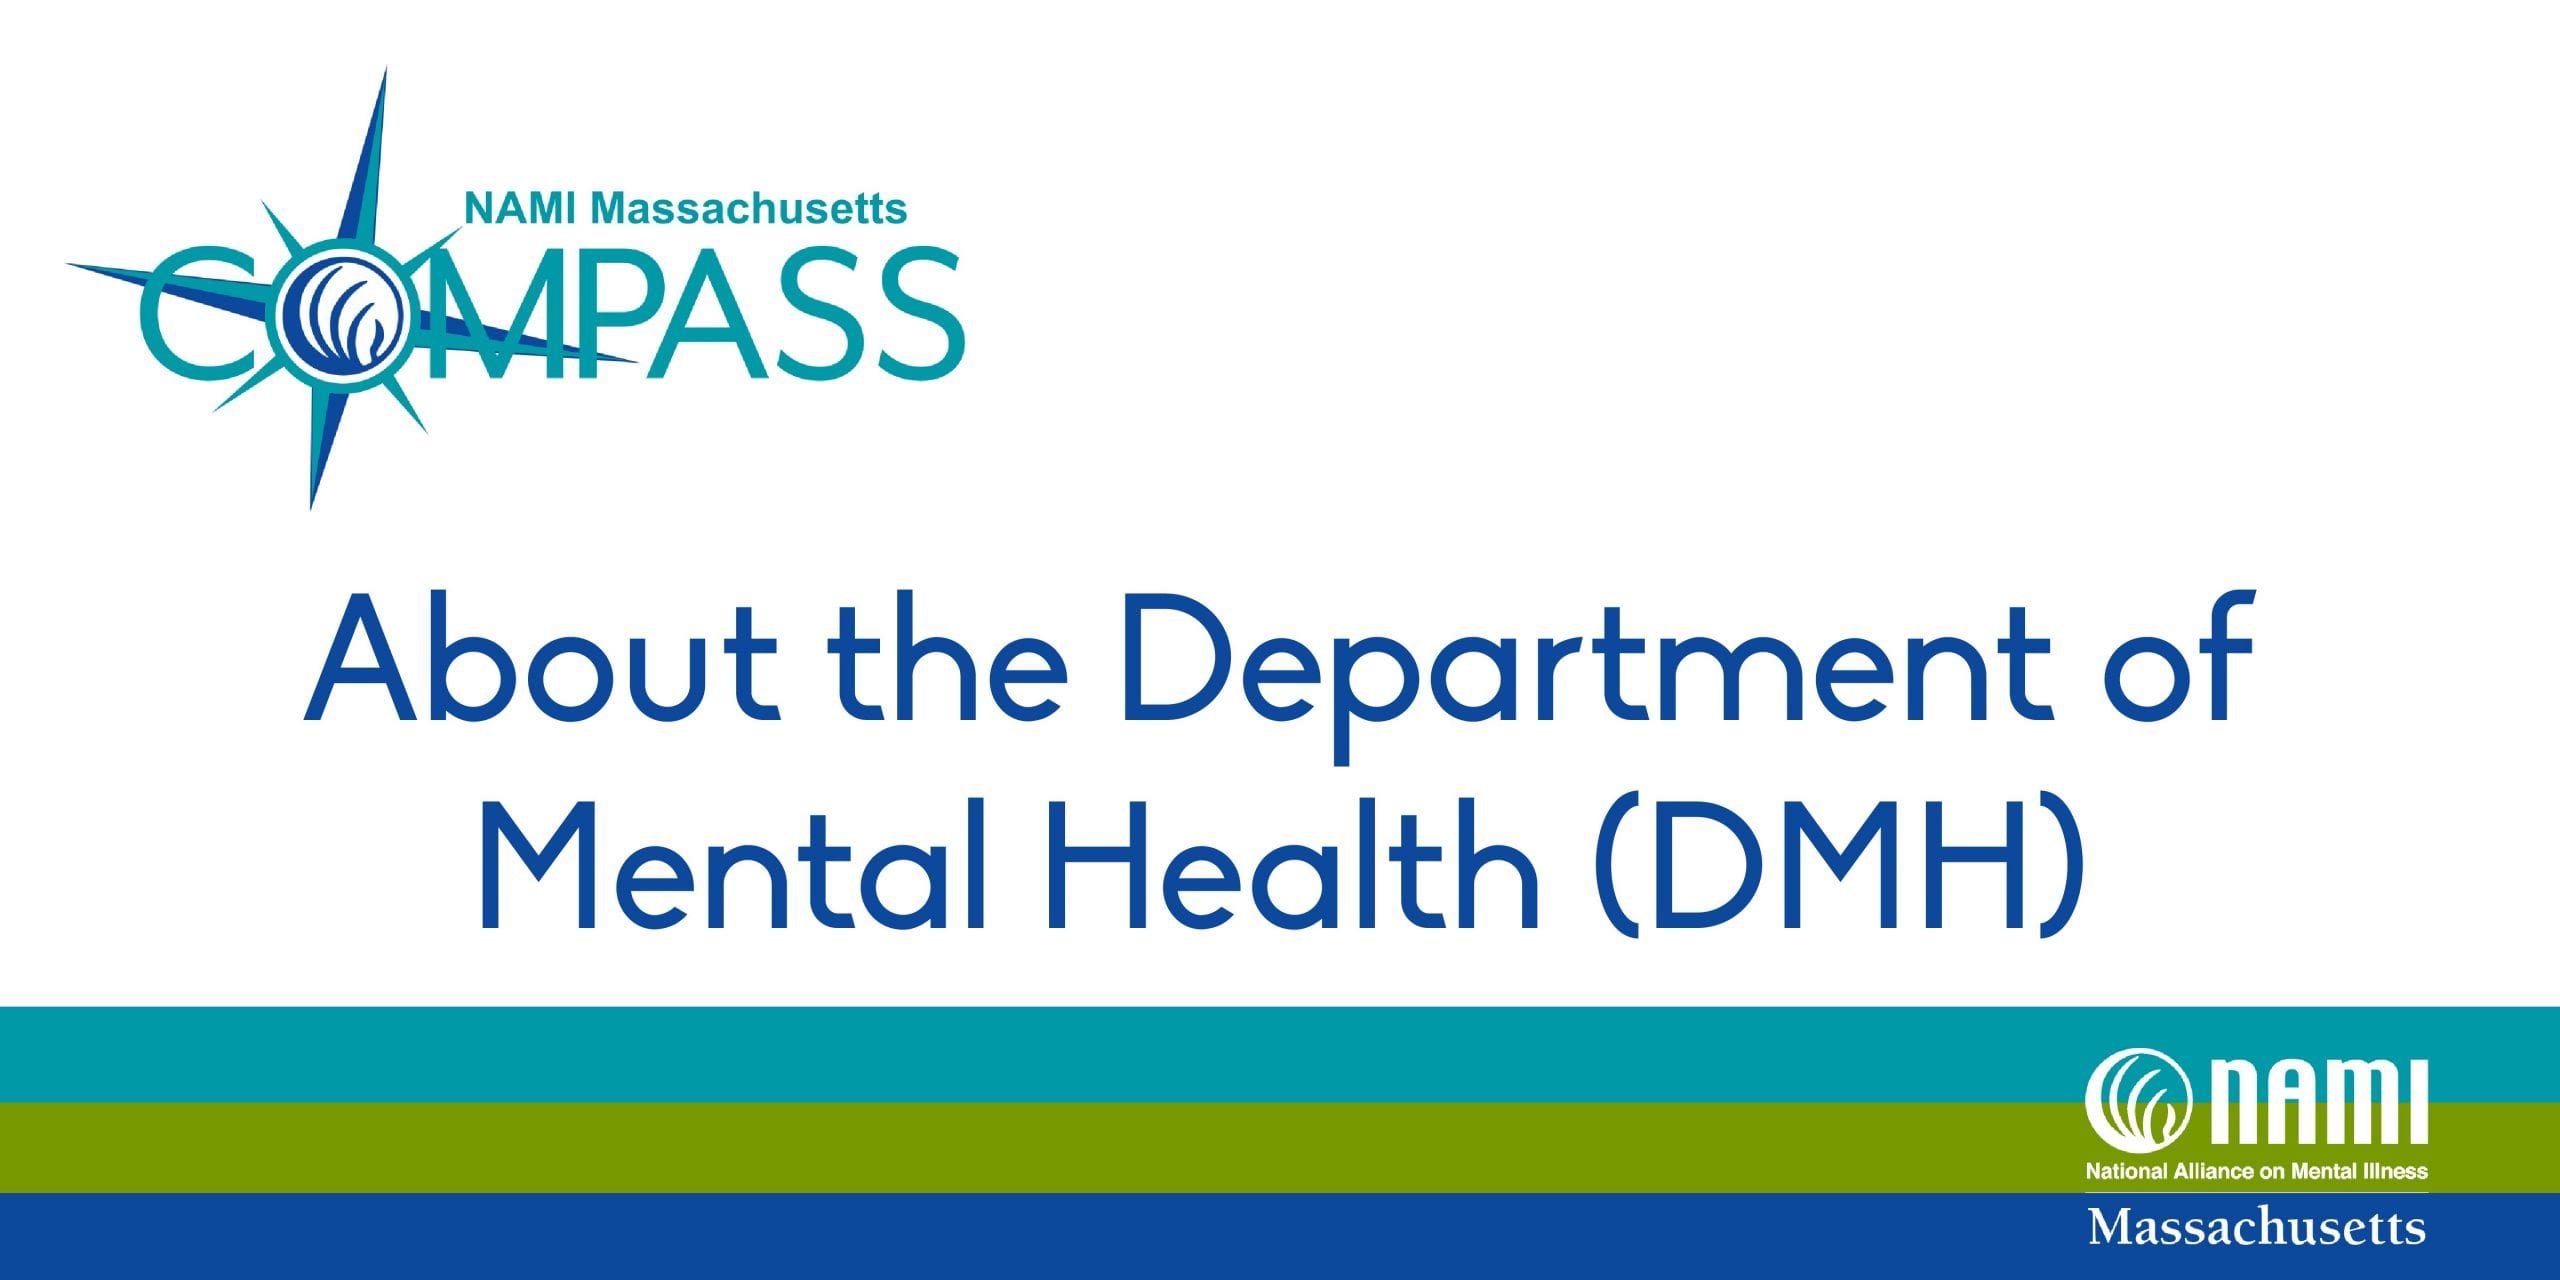 About the Department of Mental Health (DMH)